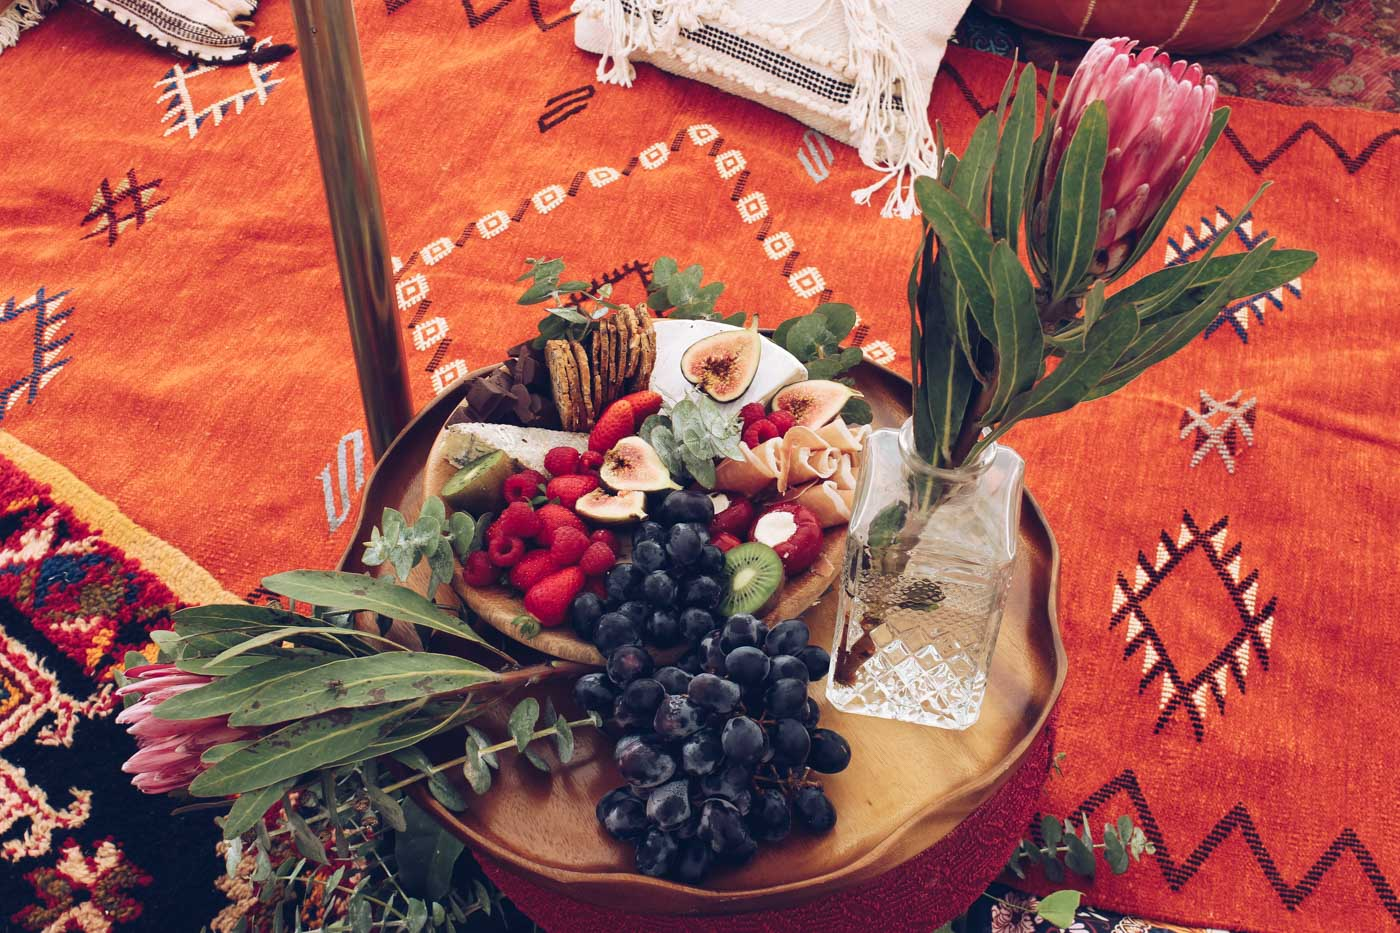 the_Collection_co_grazing_table_cairns_weddings_catering_grazing_platter_hire_pop_up_picnic_bell_tent_event_hire_styling-13-2.jpg